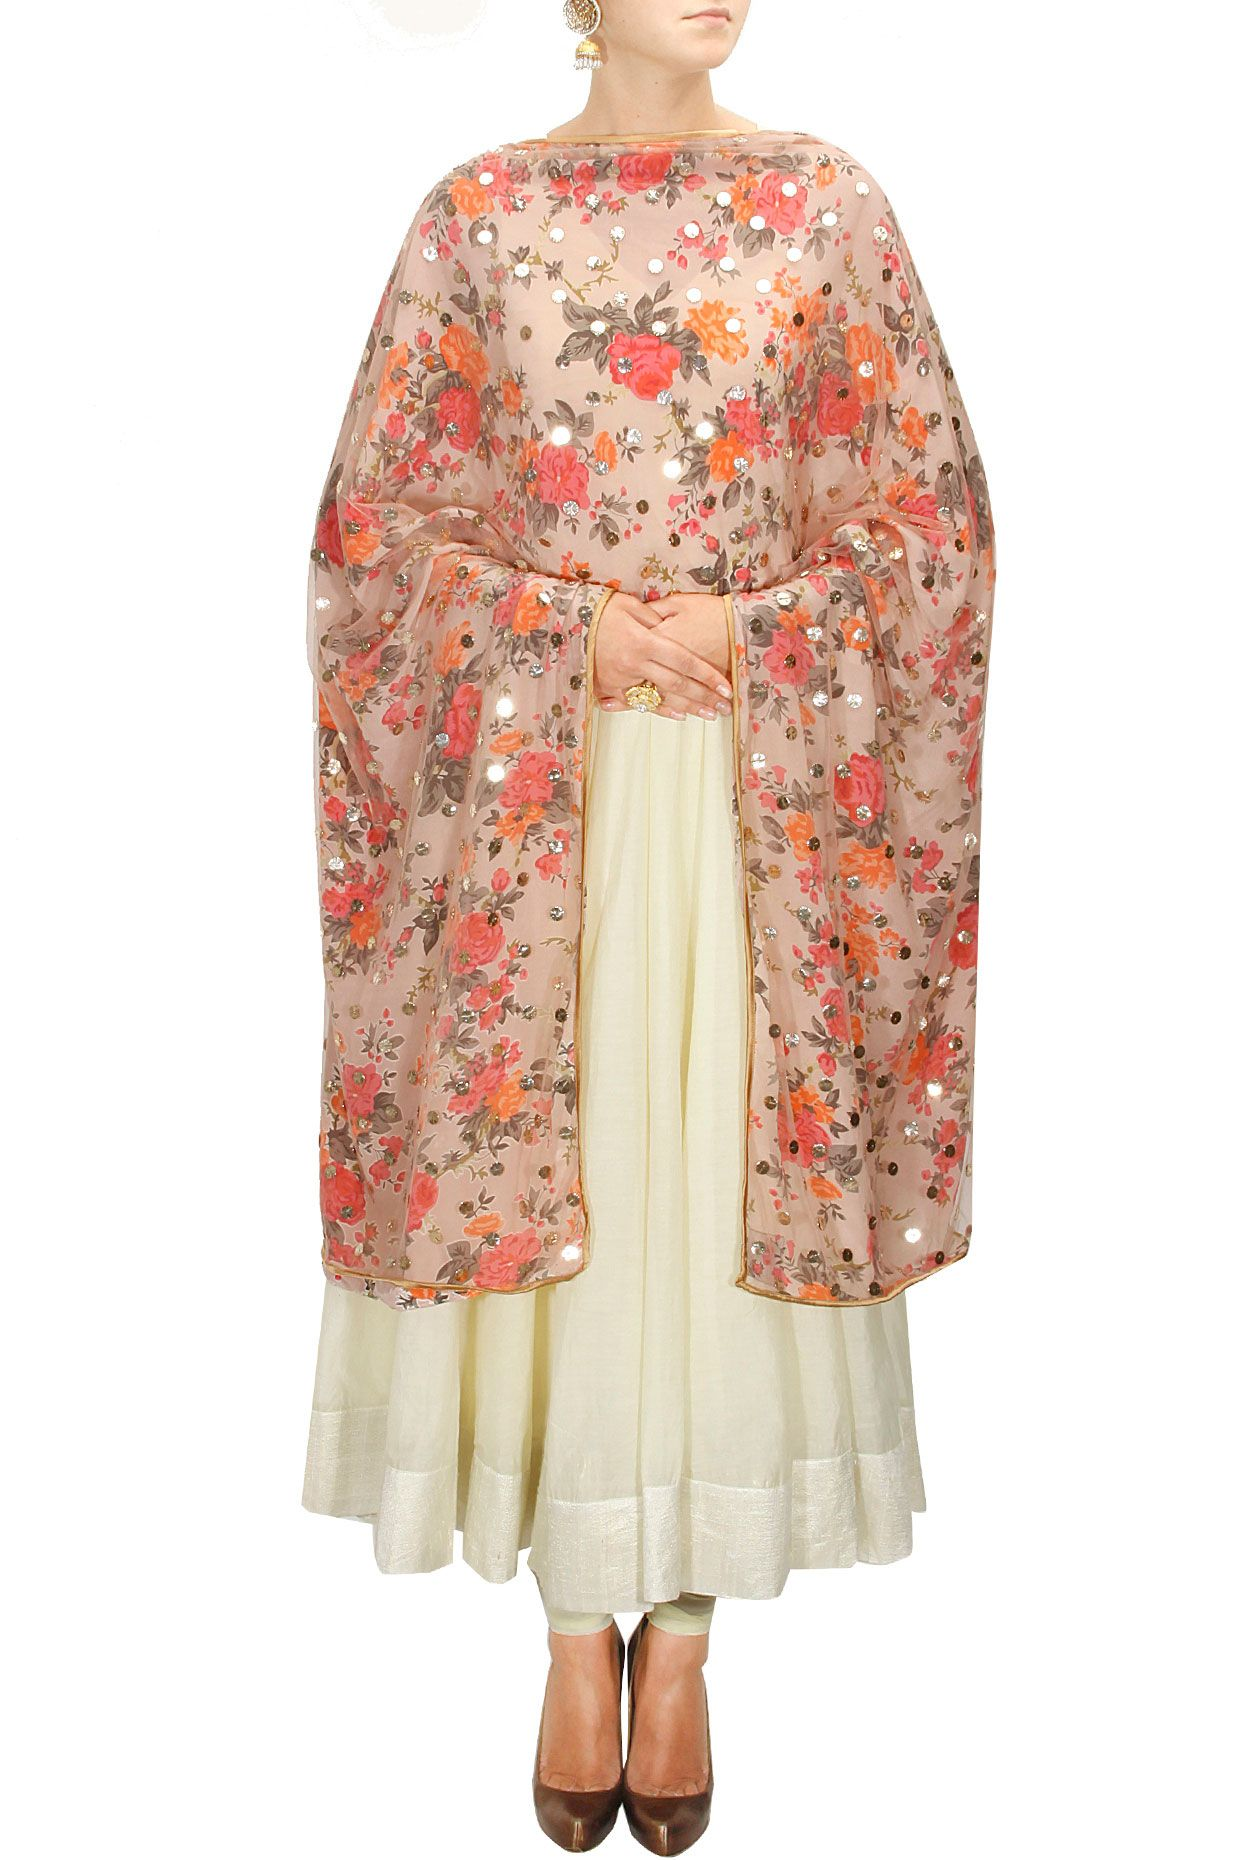 8b574d99ce1 Pretty dupattas paired with plain suits can give you lots of different  outfits.